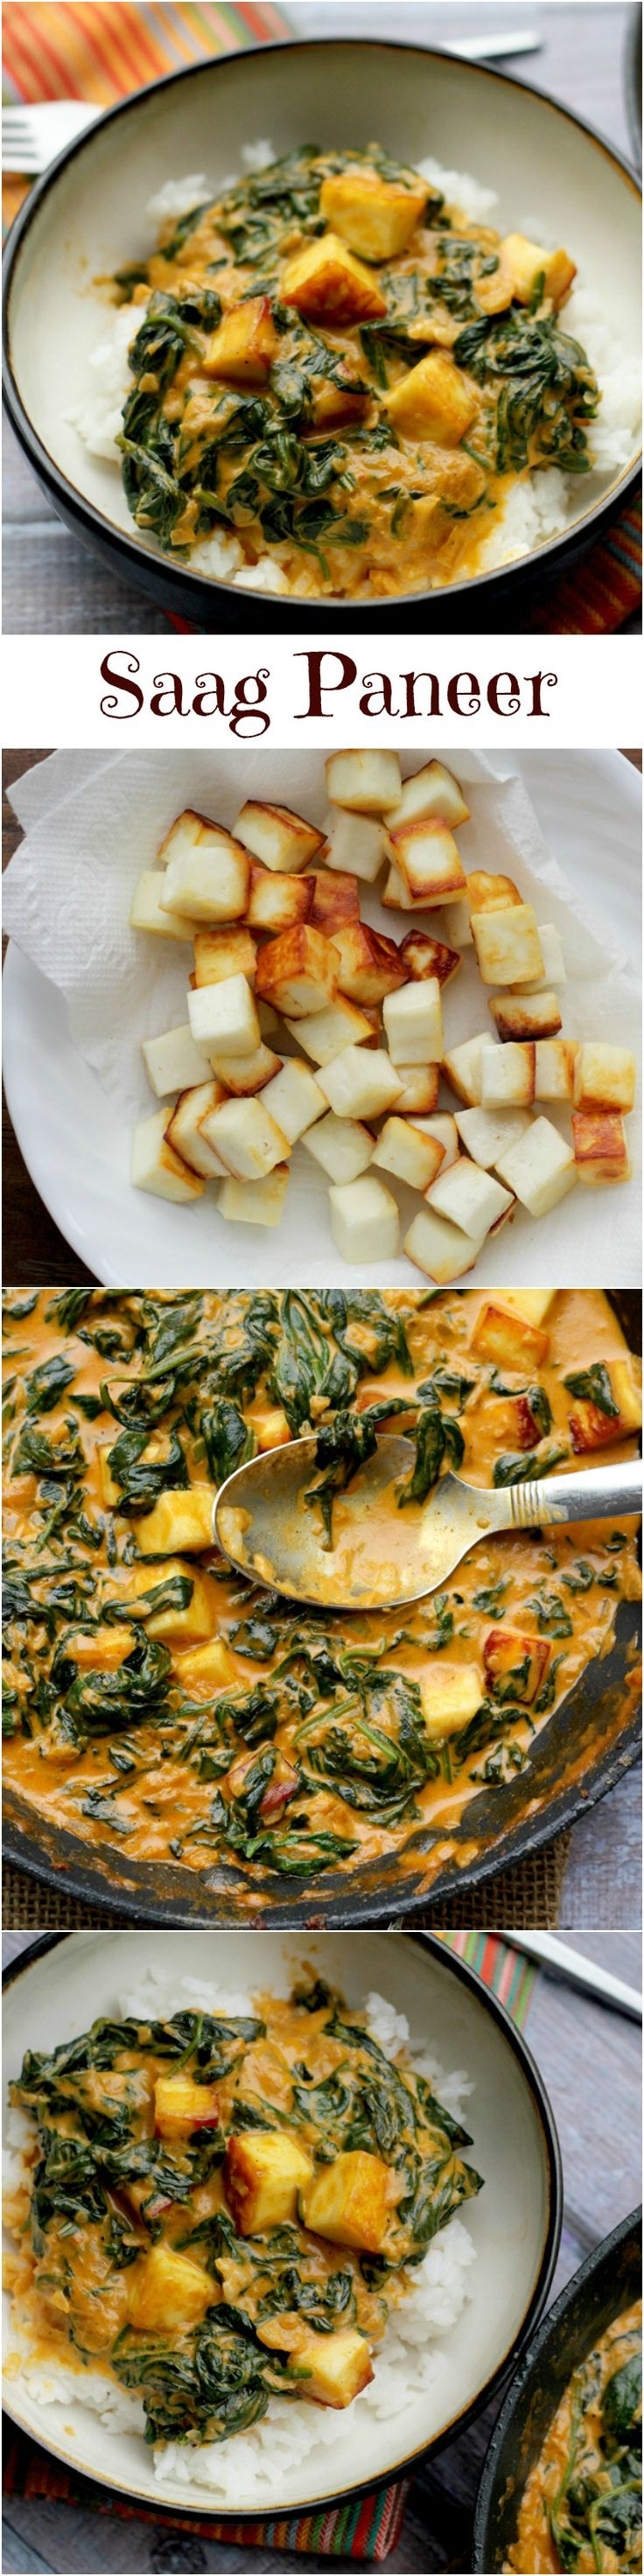 Saag paneer is a classic north Indian dish that is made up of fried paneer cheese and a creamy spinach sauce. You can find on just about any Indian restaurant menu, but it has way better flavor when you make it at home.